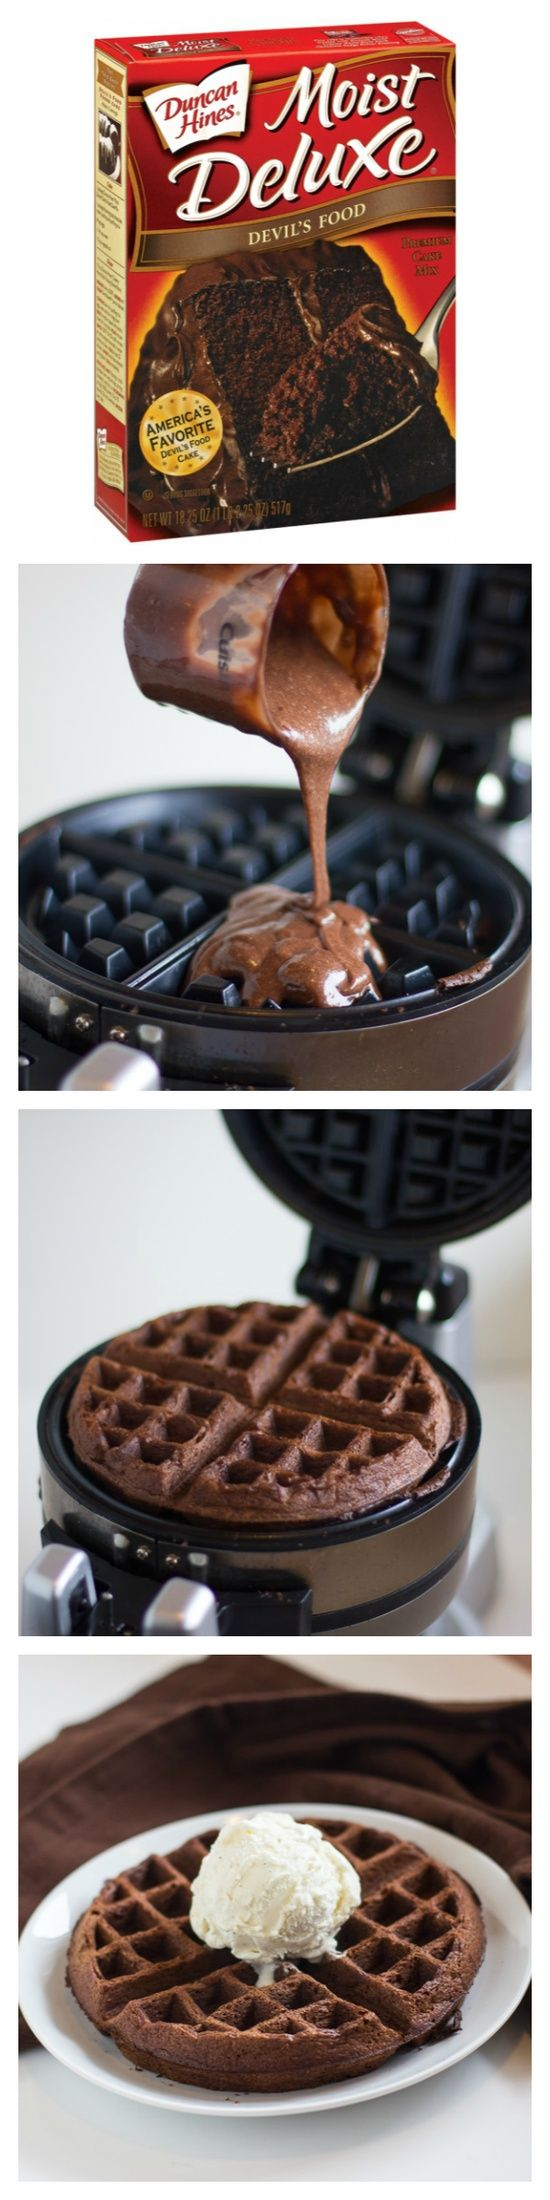 Cake Mix Waffles:  Make the cake batter as instructed on the box then make them just like you do waffles. Top them with your favorite ice cream!